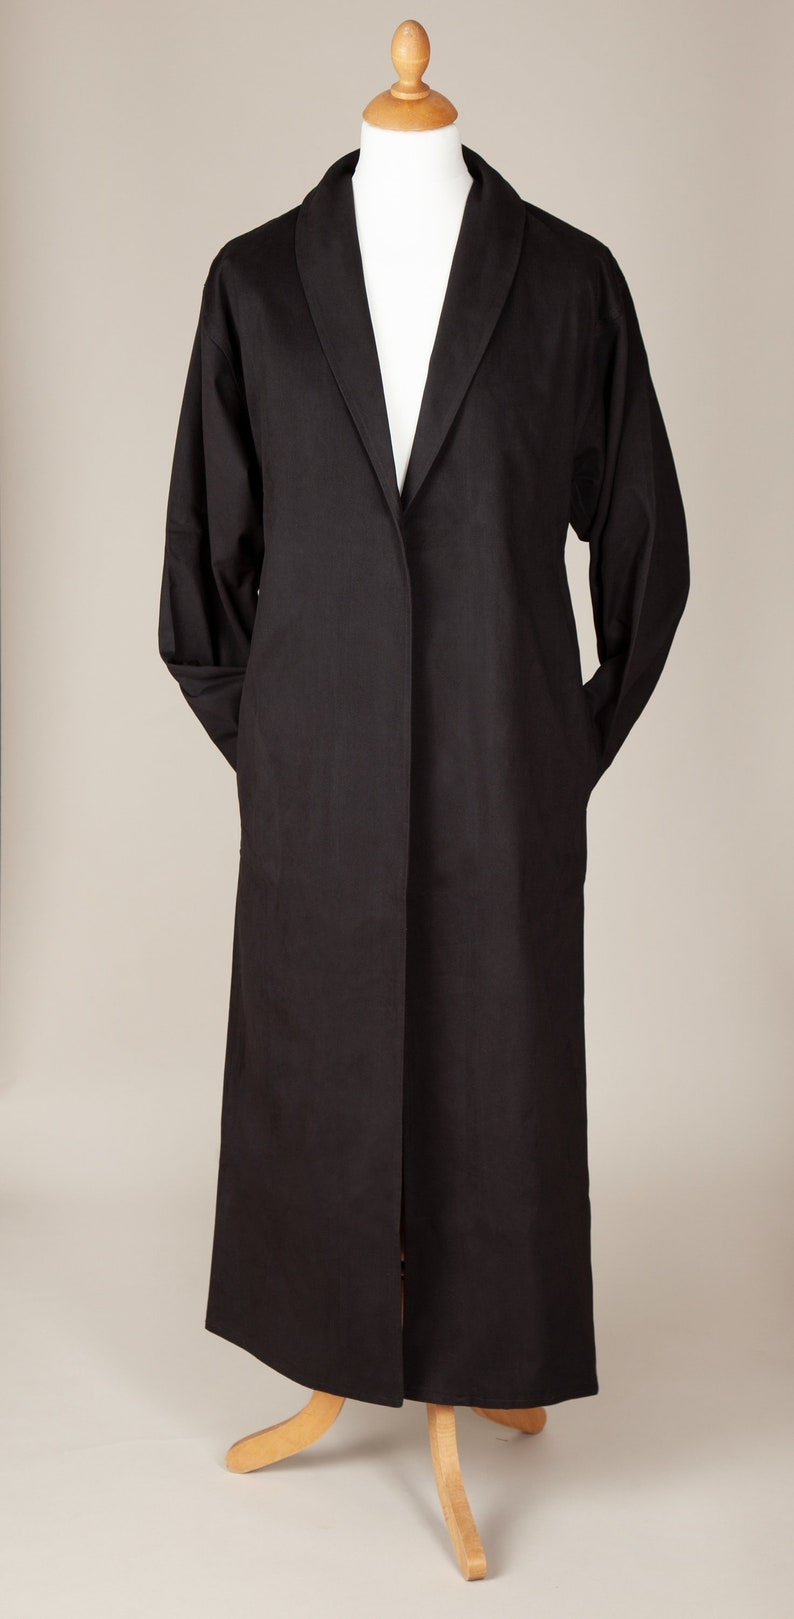 Victorian Men's Clothing, Fashion – 1840 to 1890s Classic Black Drill Duster Coat $79.95 AT vintagedancer.com